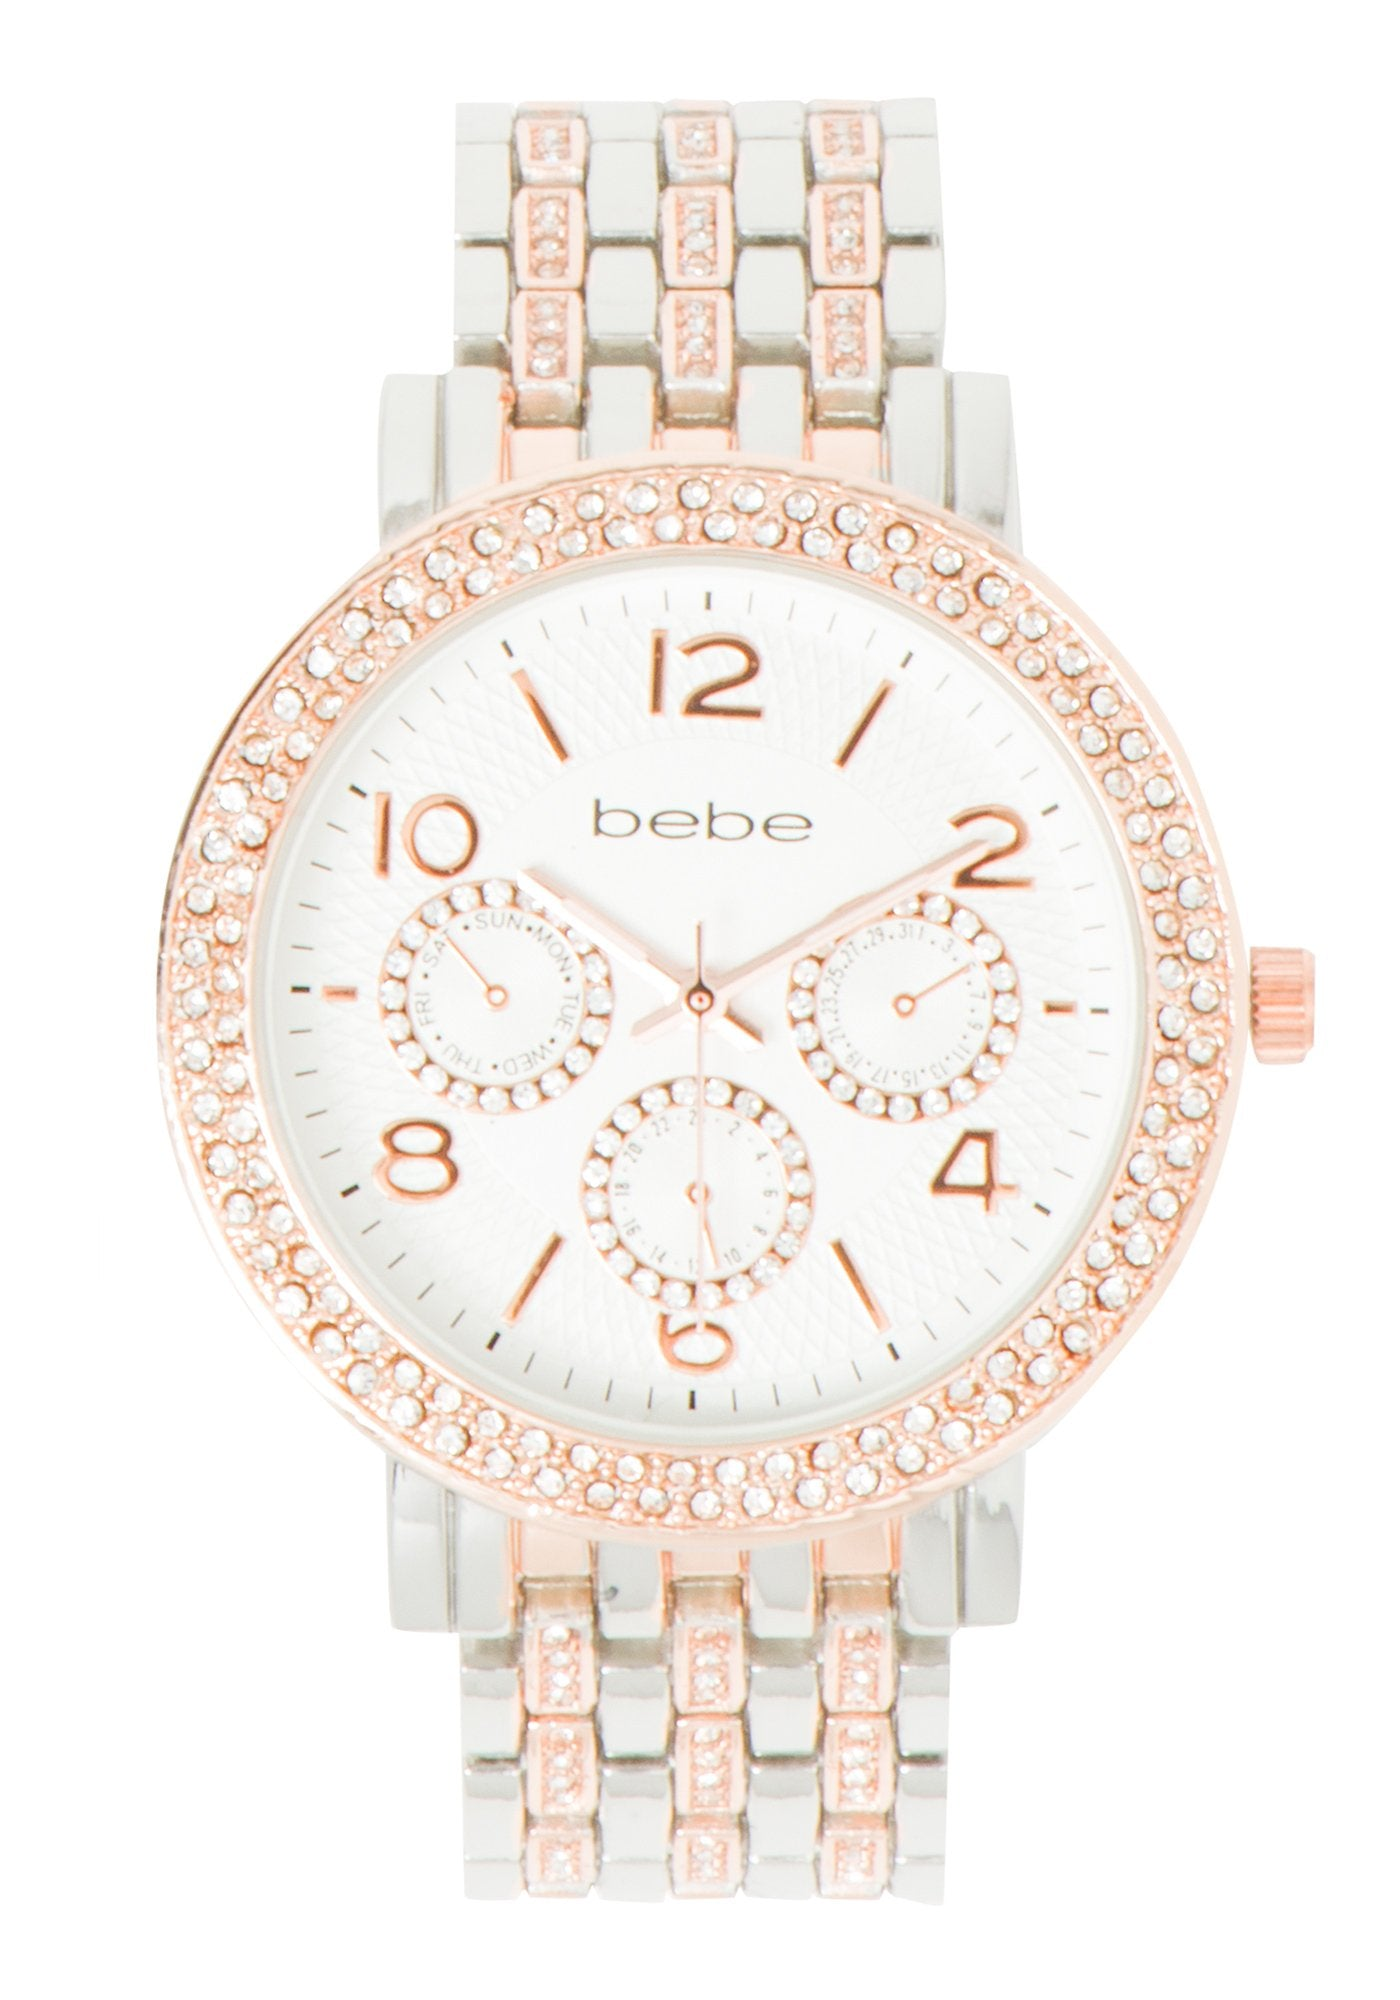 Women's Bebe Two Tone Crystal Watch in SILVER/ROSE GOLD Metal